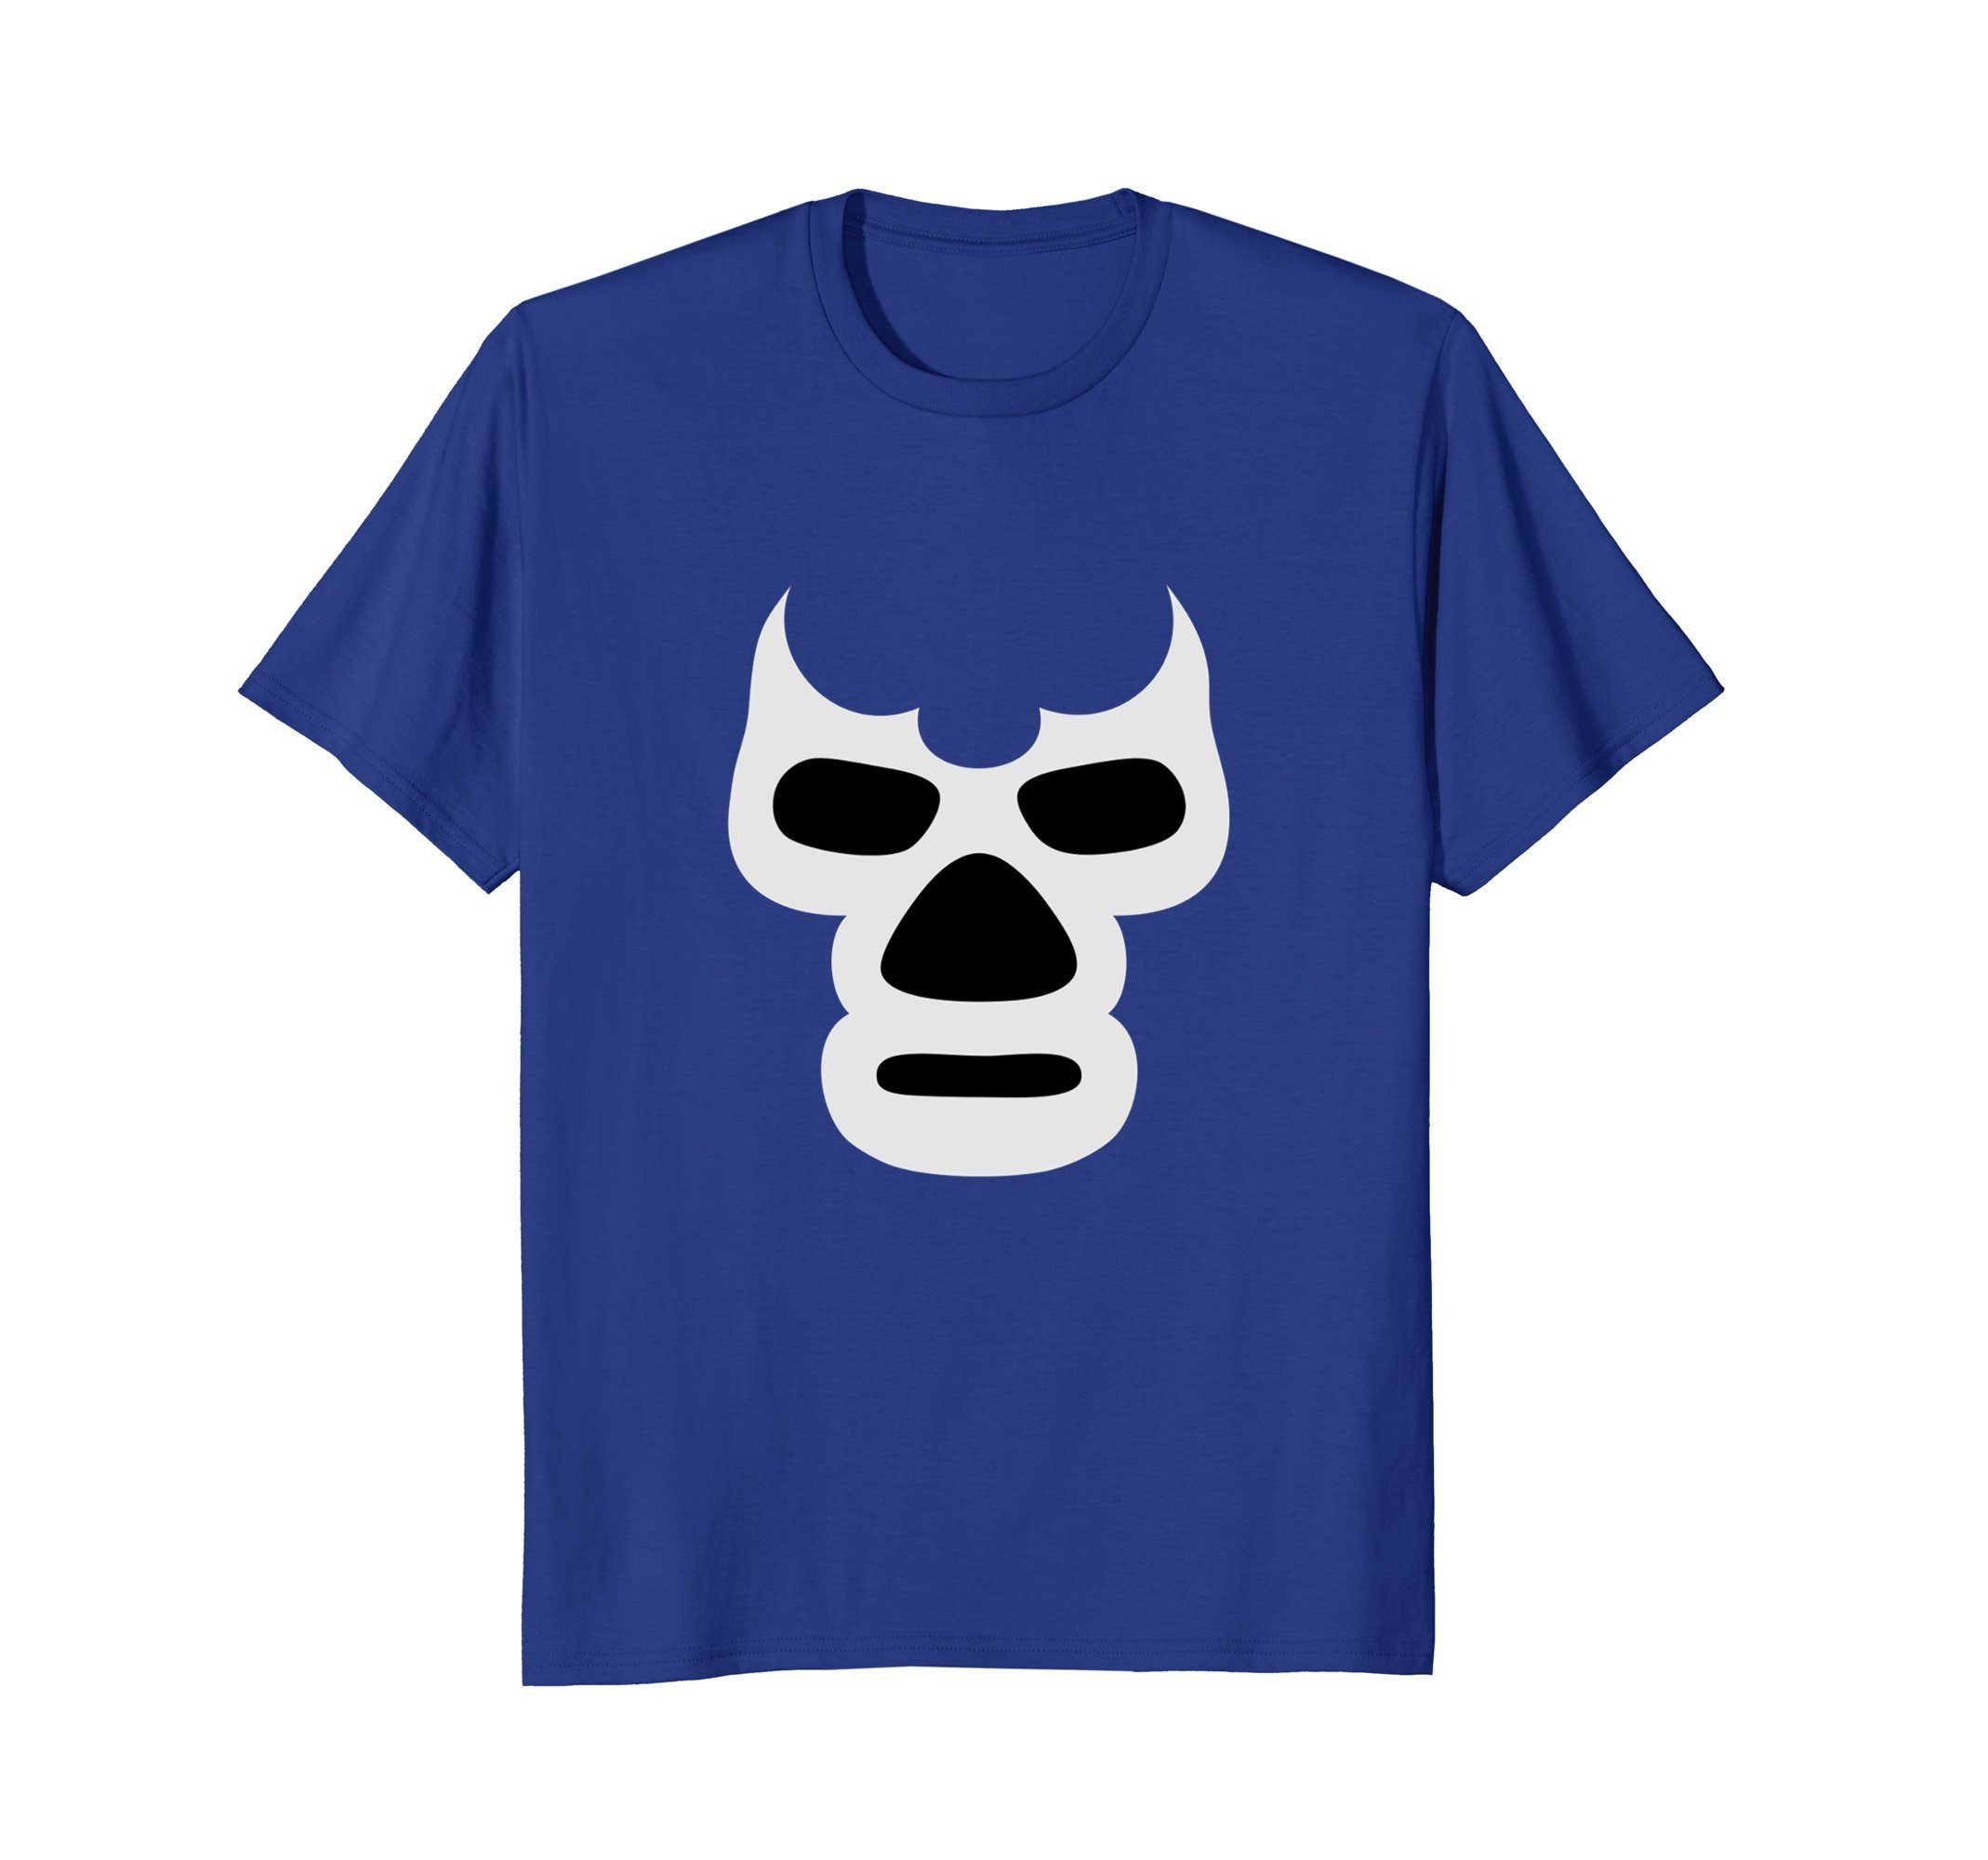 Mens Lucha Libre Face T-Shirt - Mexican Wrestler Hero Style Tee Large Royal Blue